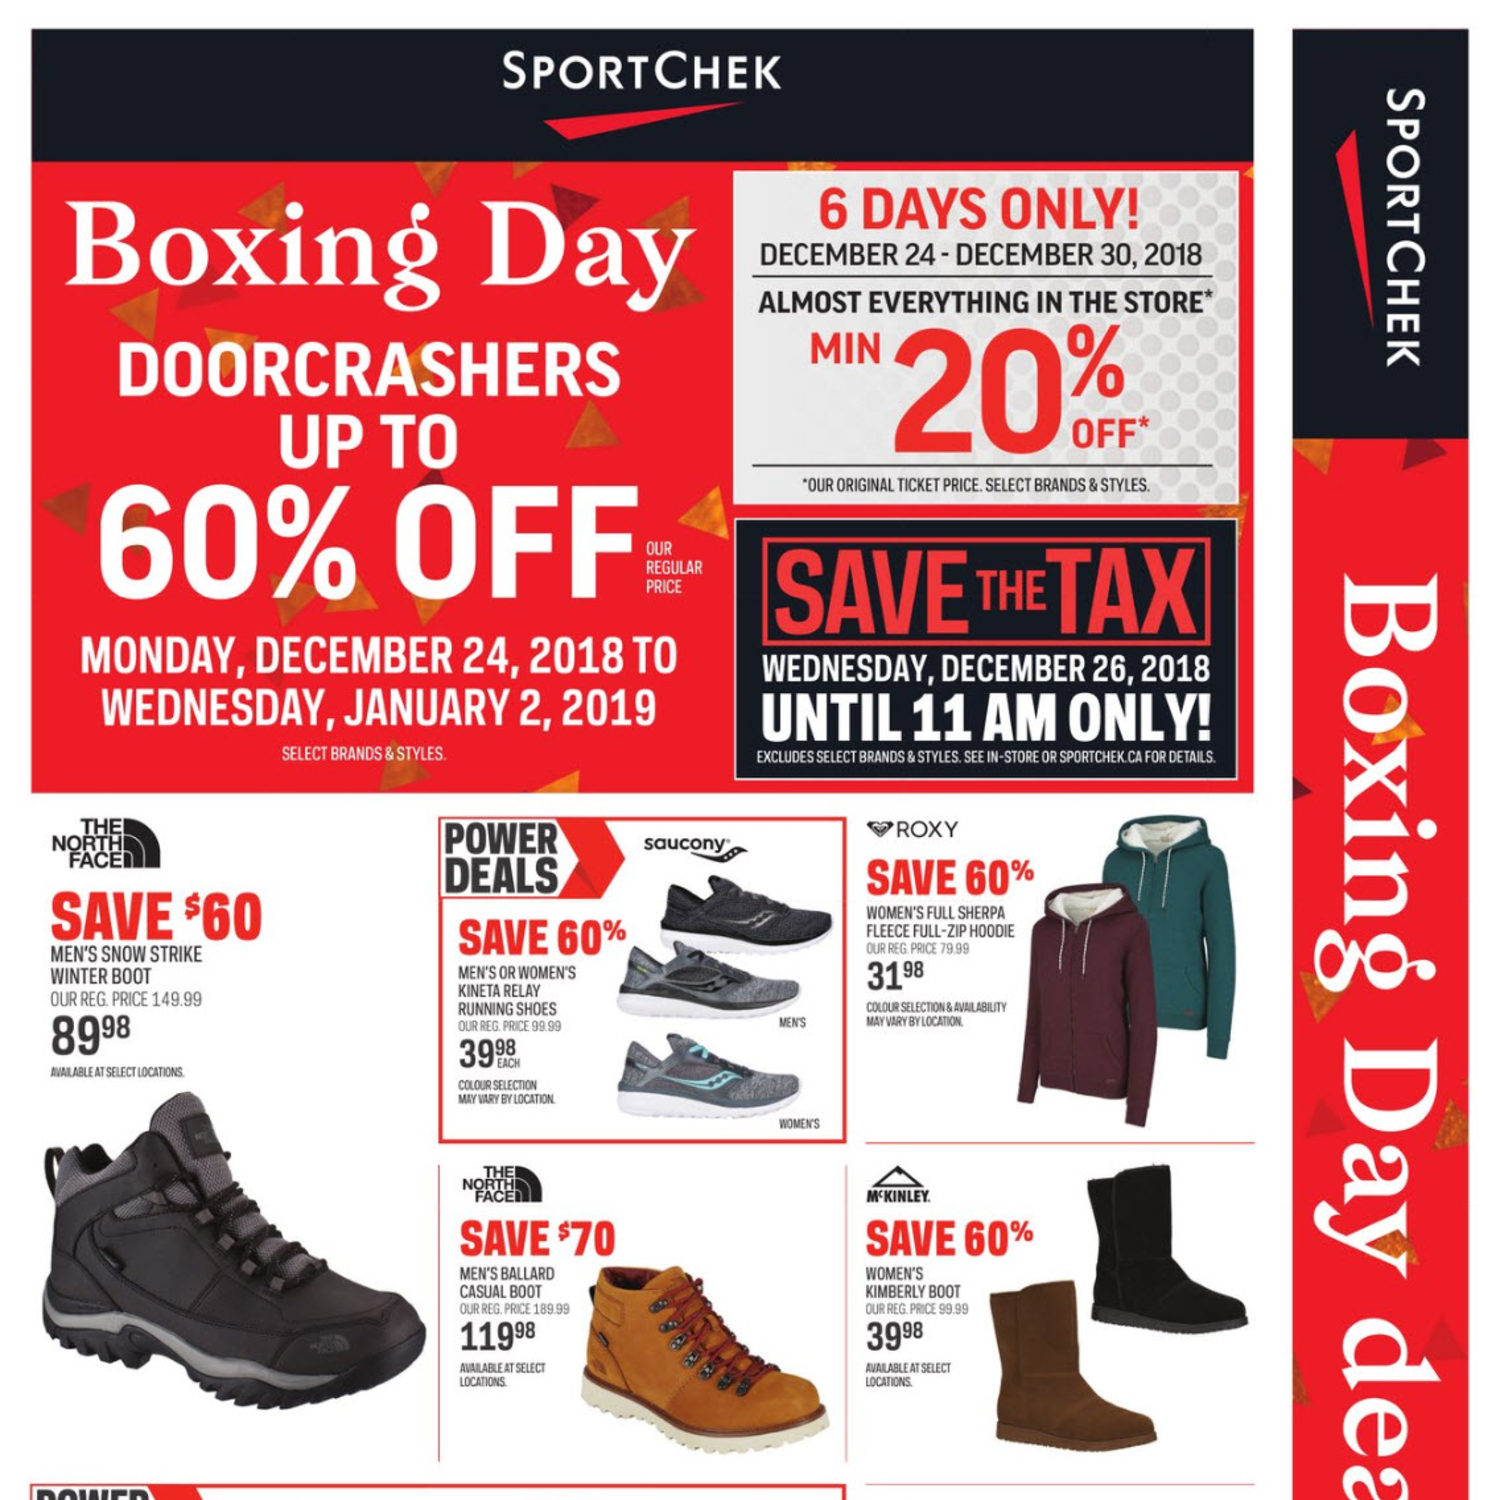 72bd275b893 Sport Chek Weekly Flyer - Boxing Day Deals Here! - Dec 24 – Jan 2 ...